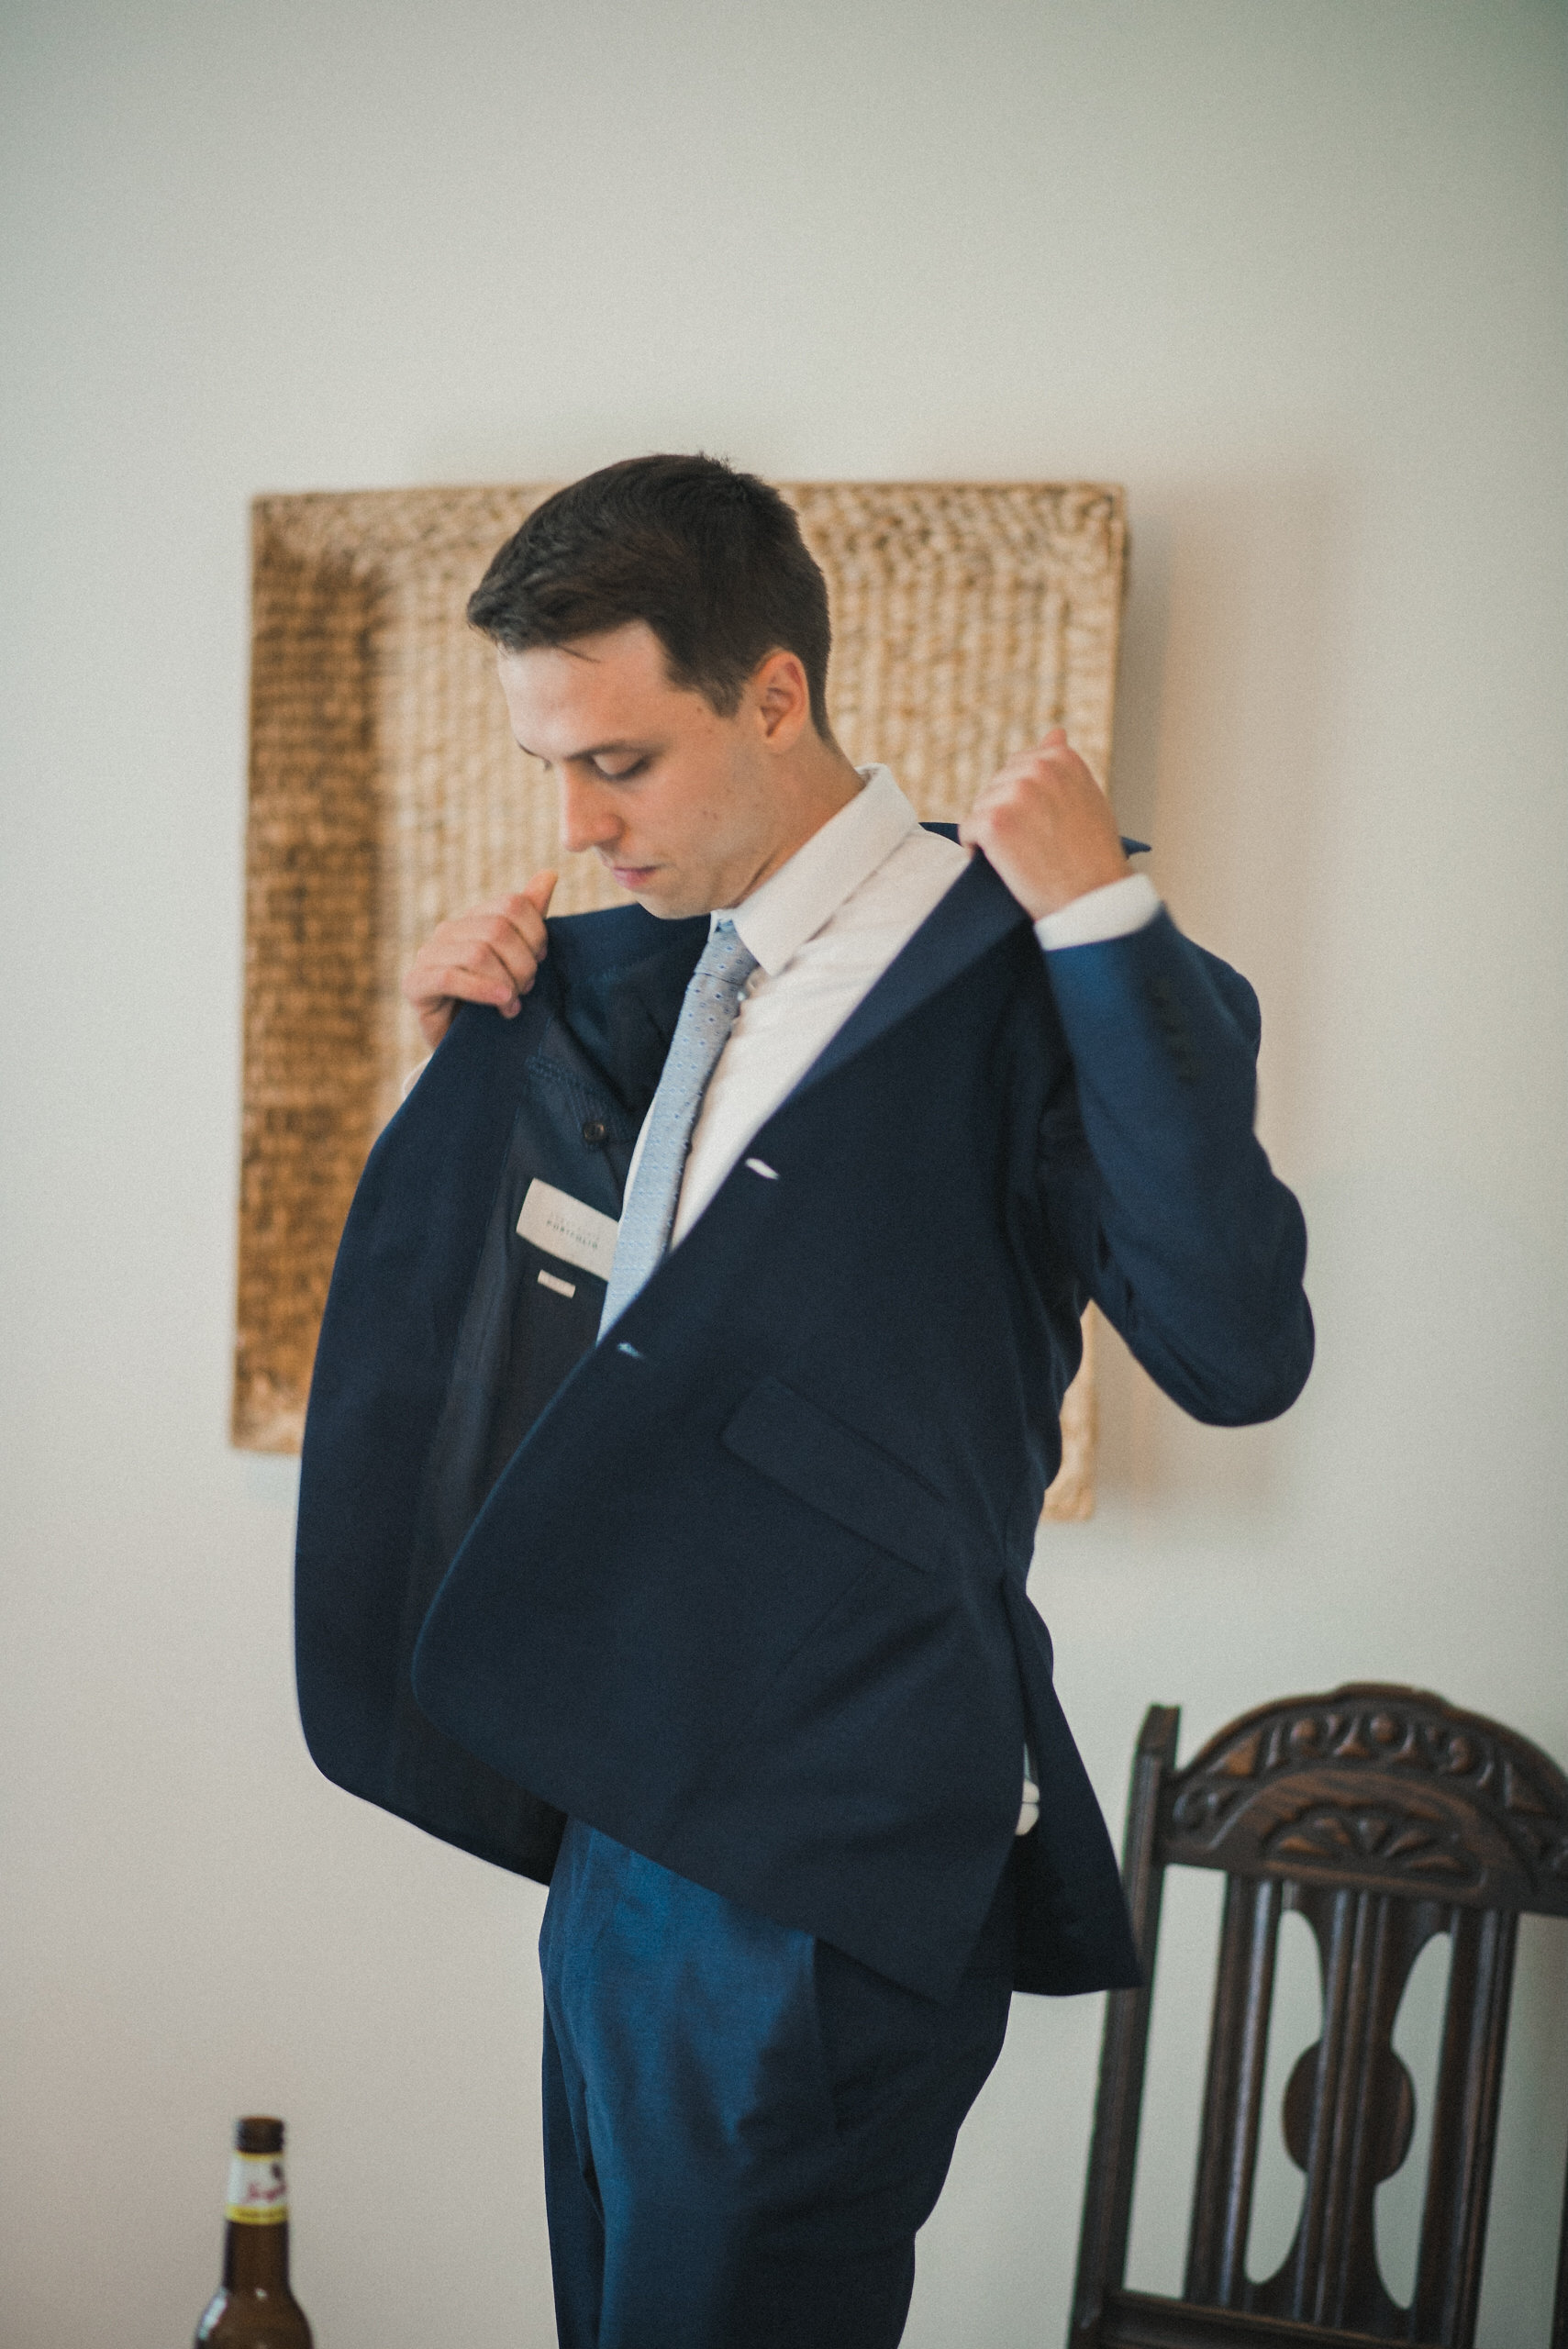 Groom putting on jacket